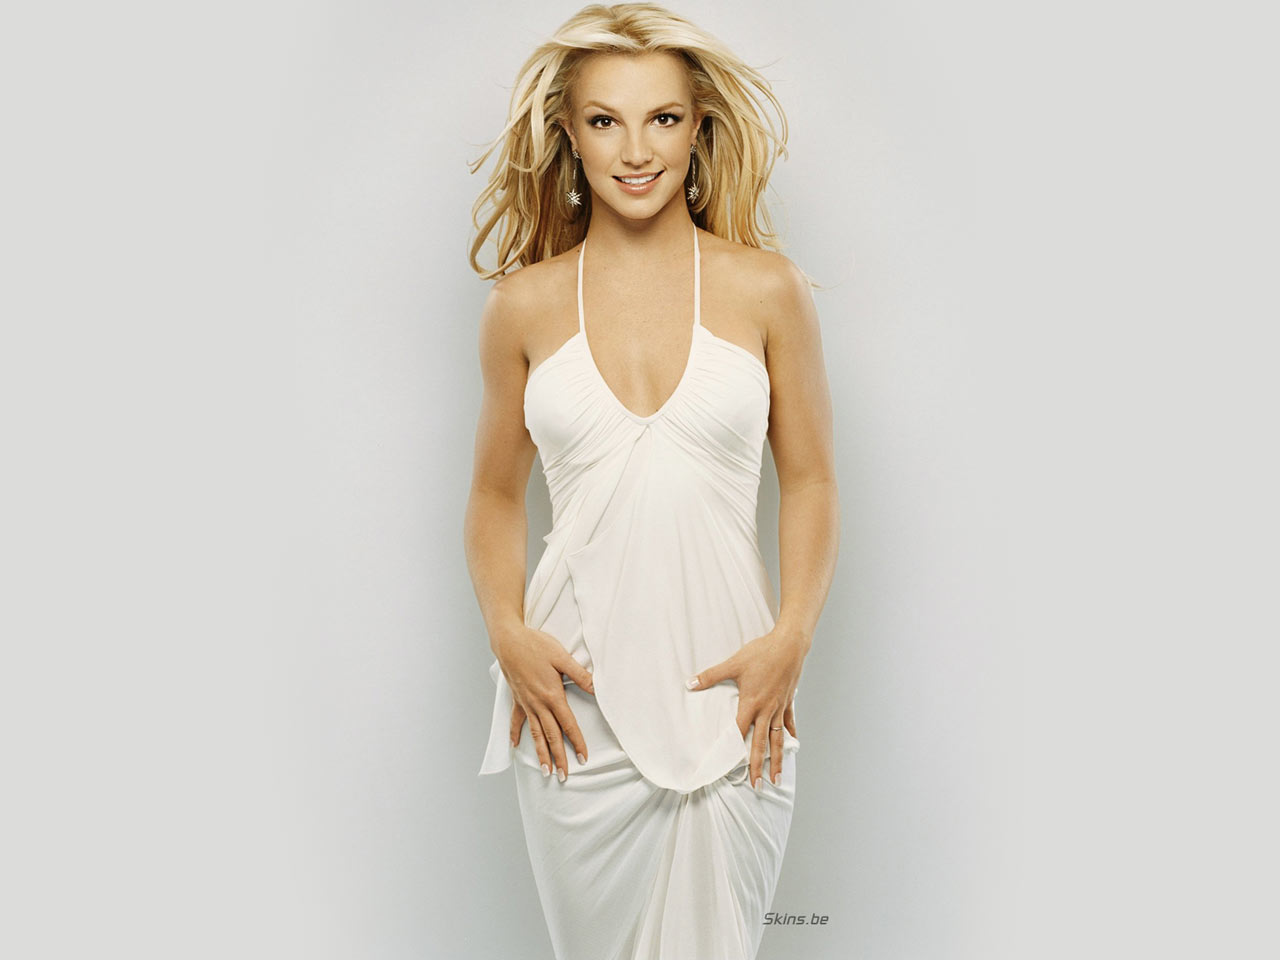 Britney Spears wallpaper (#19702)